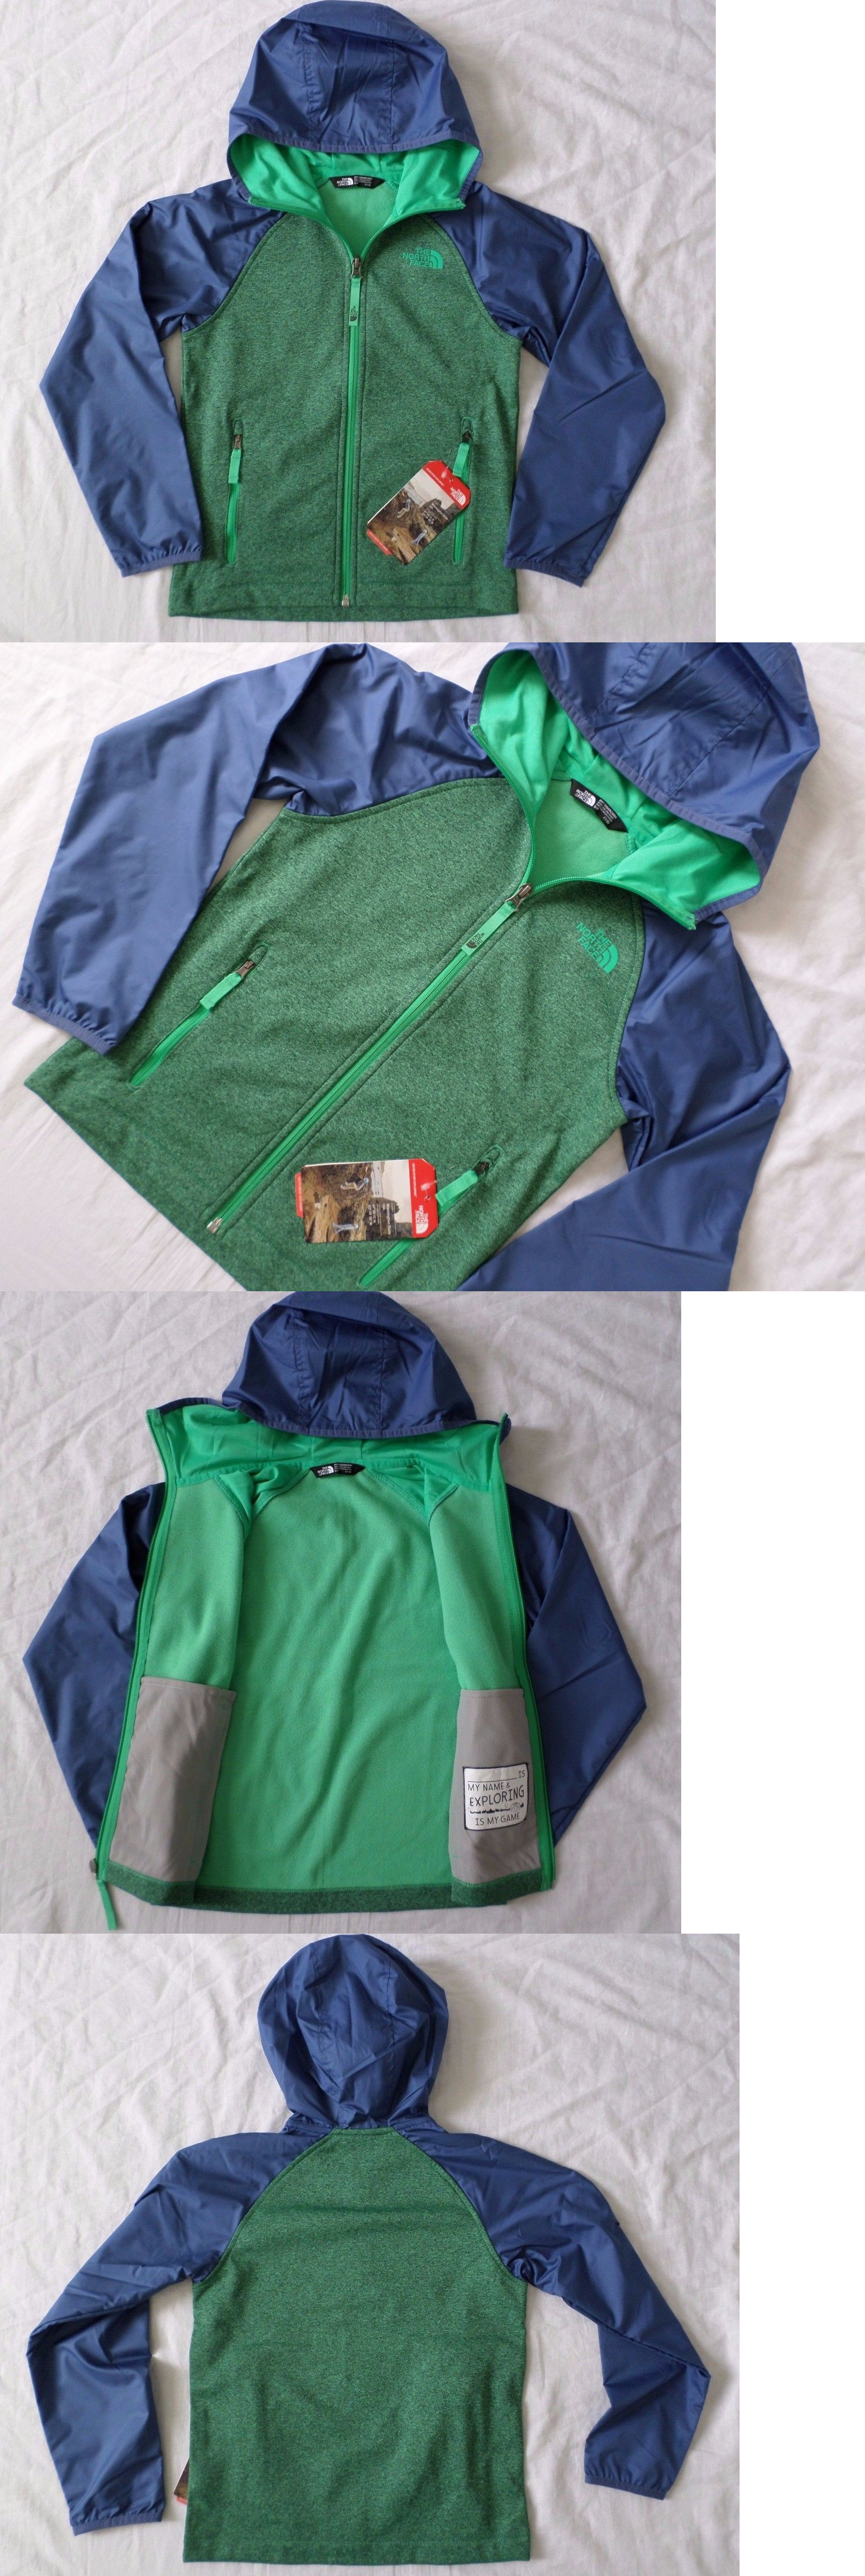 d833355a329f Outerwear 51933  New The North Face Kids Boys Canyonlands Fleece Lined  Track Hoodie Xs S M L